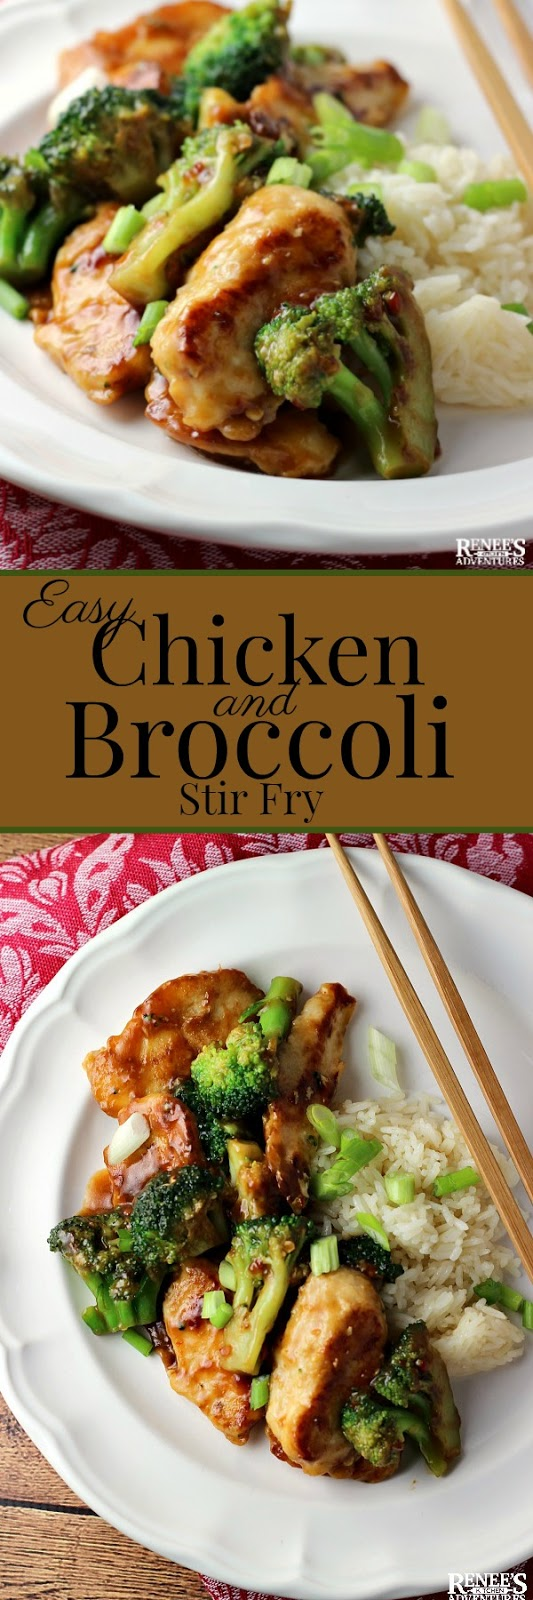 Easy Chicken Broccoli Stir Fry Recipe